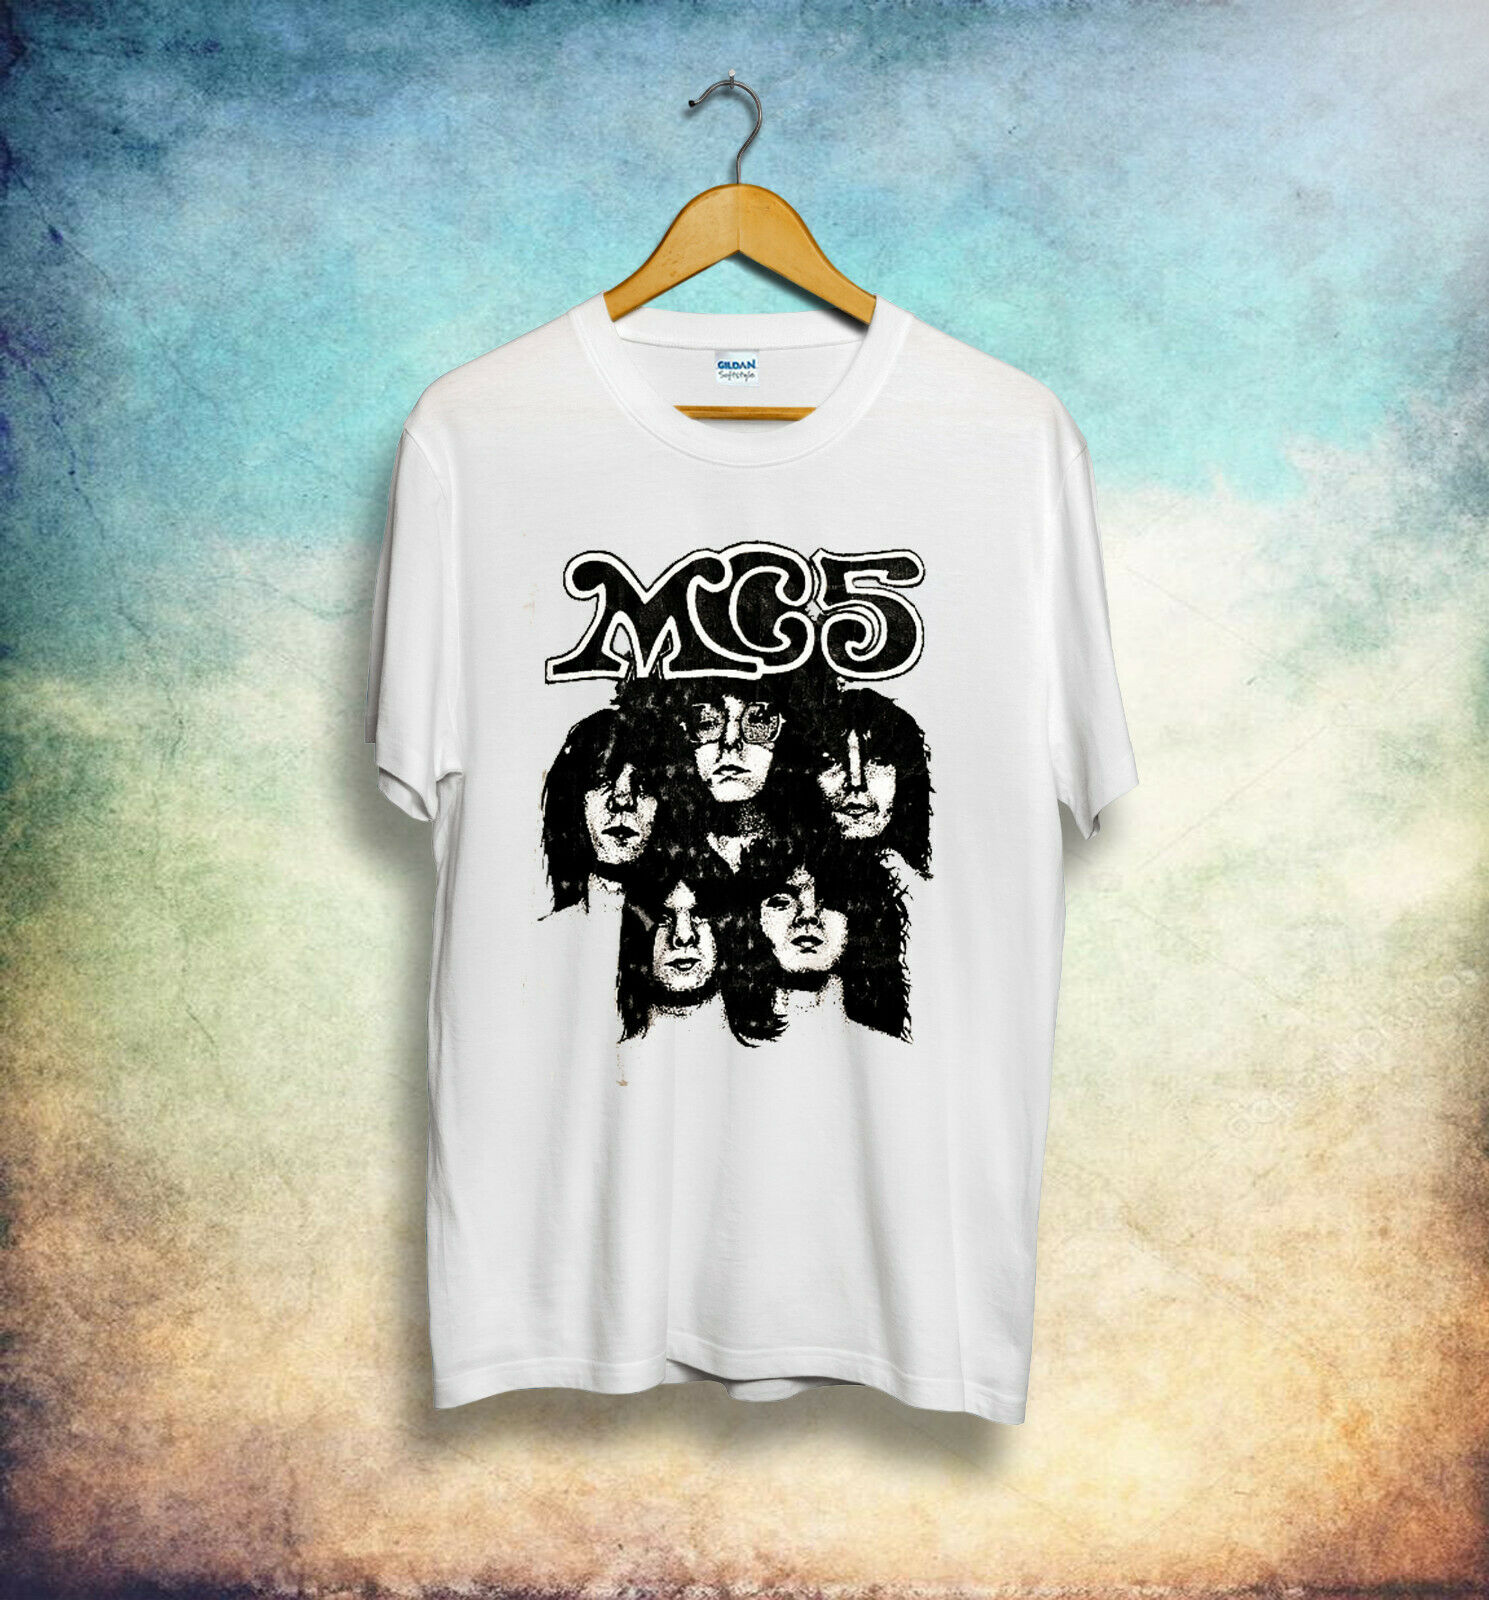 MC5 Winged Panther Kick Out The Jams Stooges Sonics Ratm Rock Retro T Shirt 439